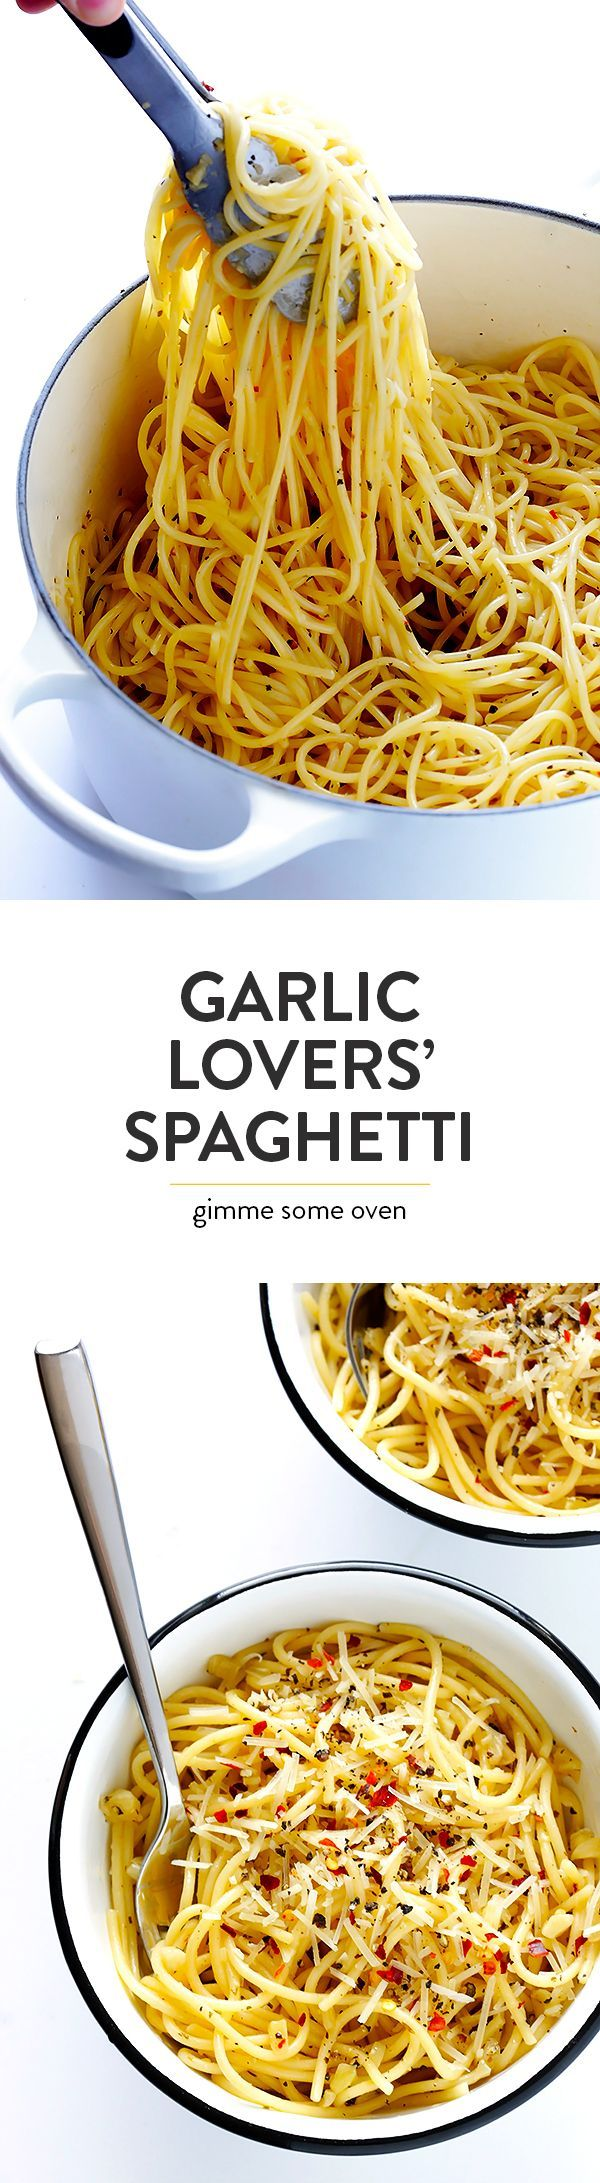 This Garlic Lovers' Spaghetti is quick and easy to make, it's packed with simple and ultra-garlicky Italian flavors, and it's absolutely delicious. | gimmesomeoven.com